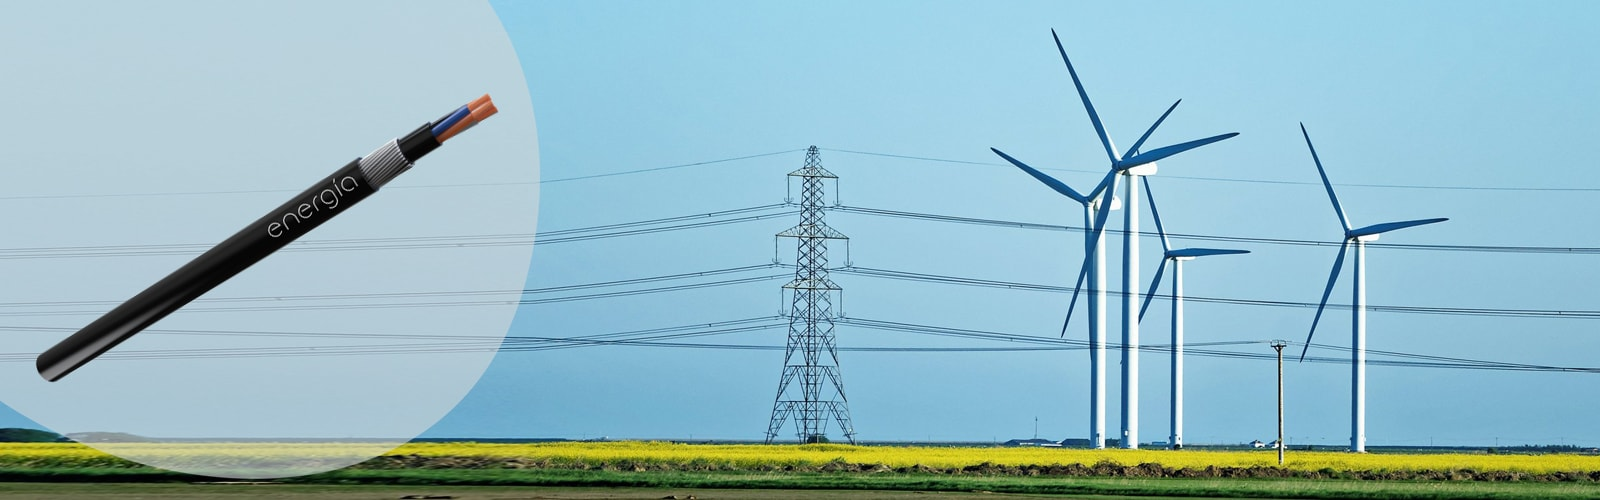 Energia Cables And Wire Harness Exporting Across The Globe Flexible Belonging To